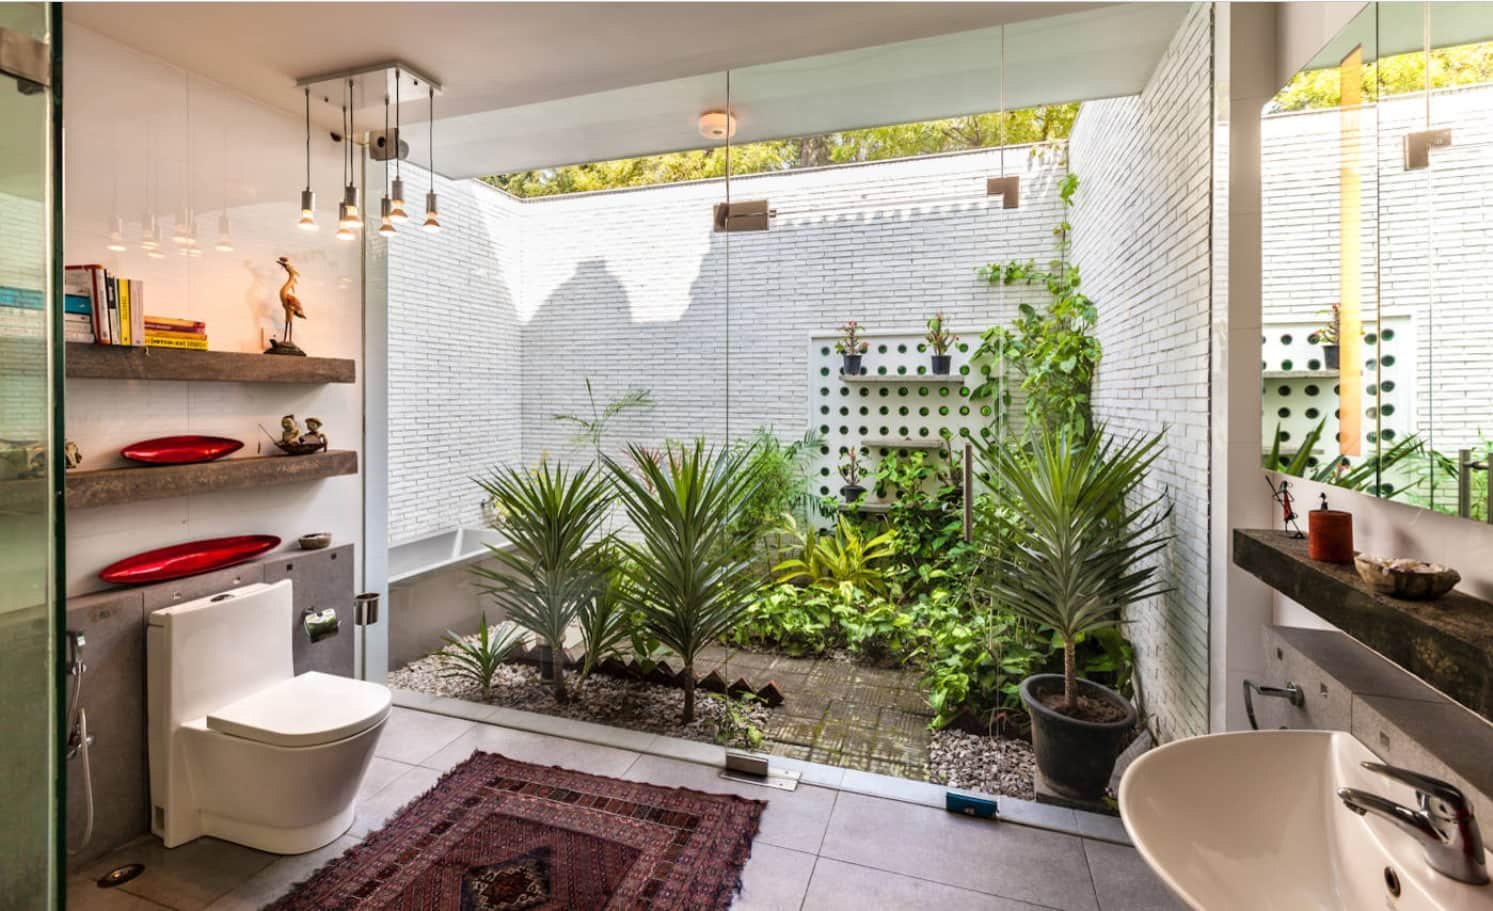 Unusual eco styled ensuite bathroom with panoramic window to the backyard